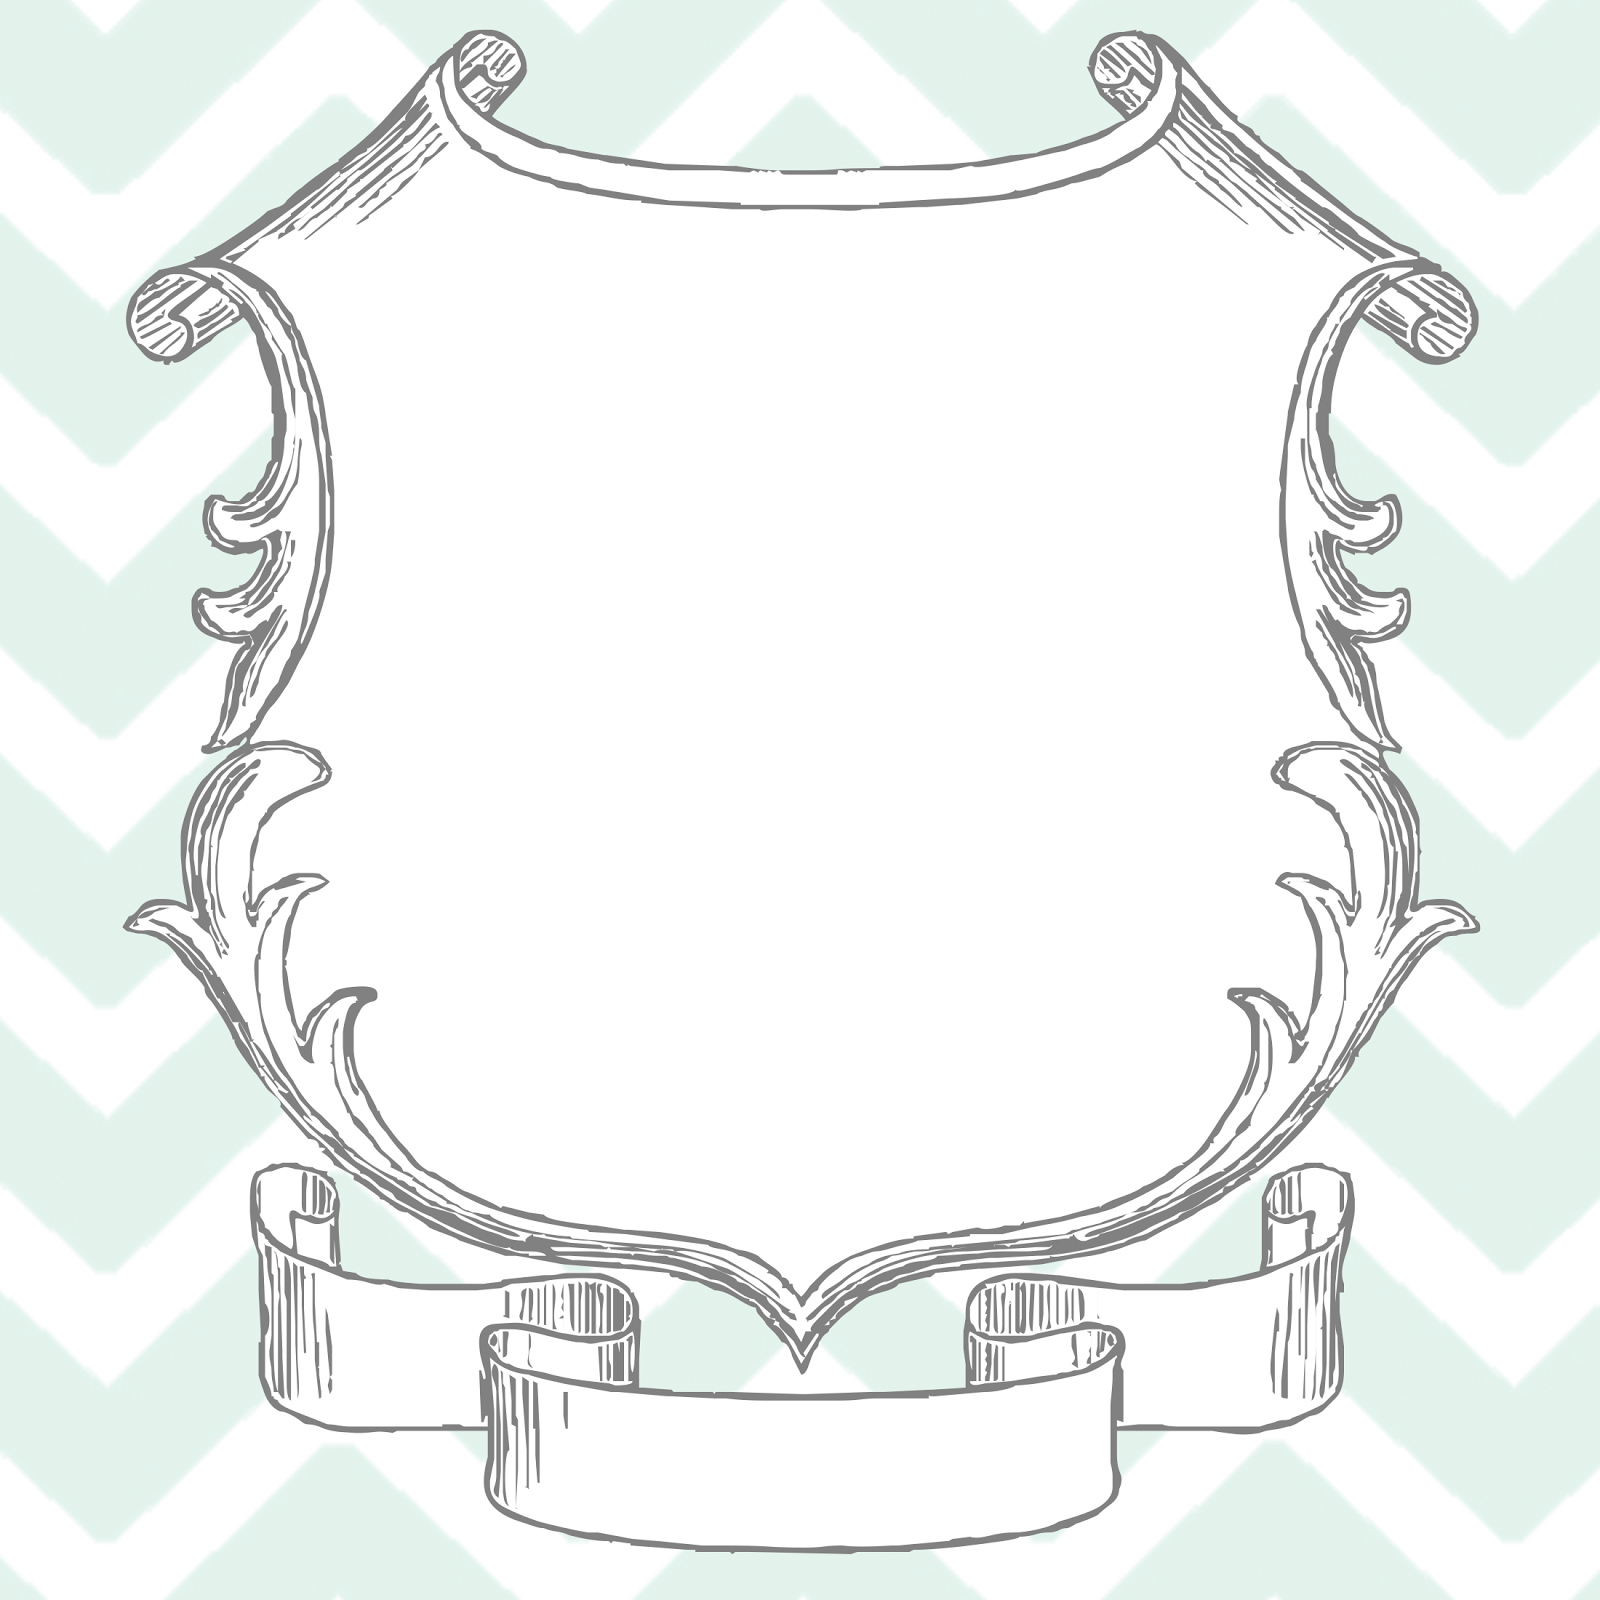 Free photoshop mint chevron sketch frame template for cards invite free photoshop mint chevron sketch frame template for cards invite or announcements jeuxipadfo Images